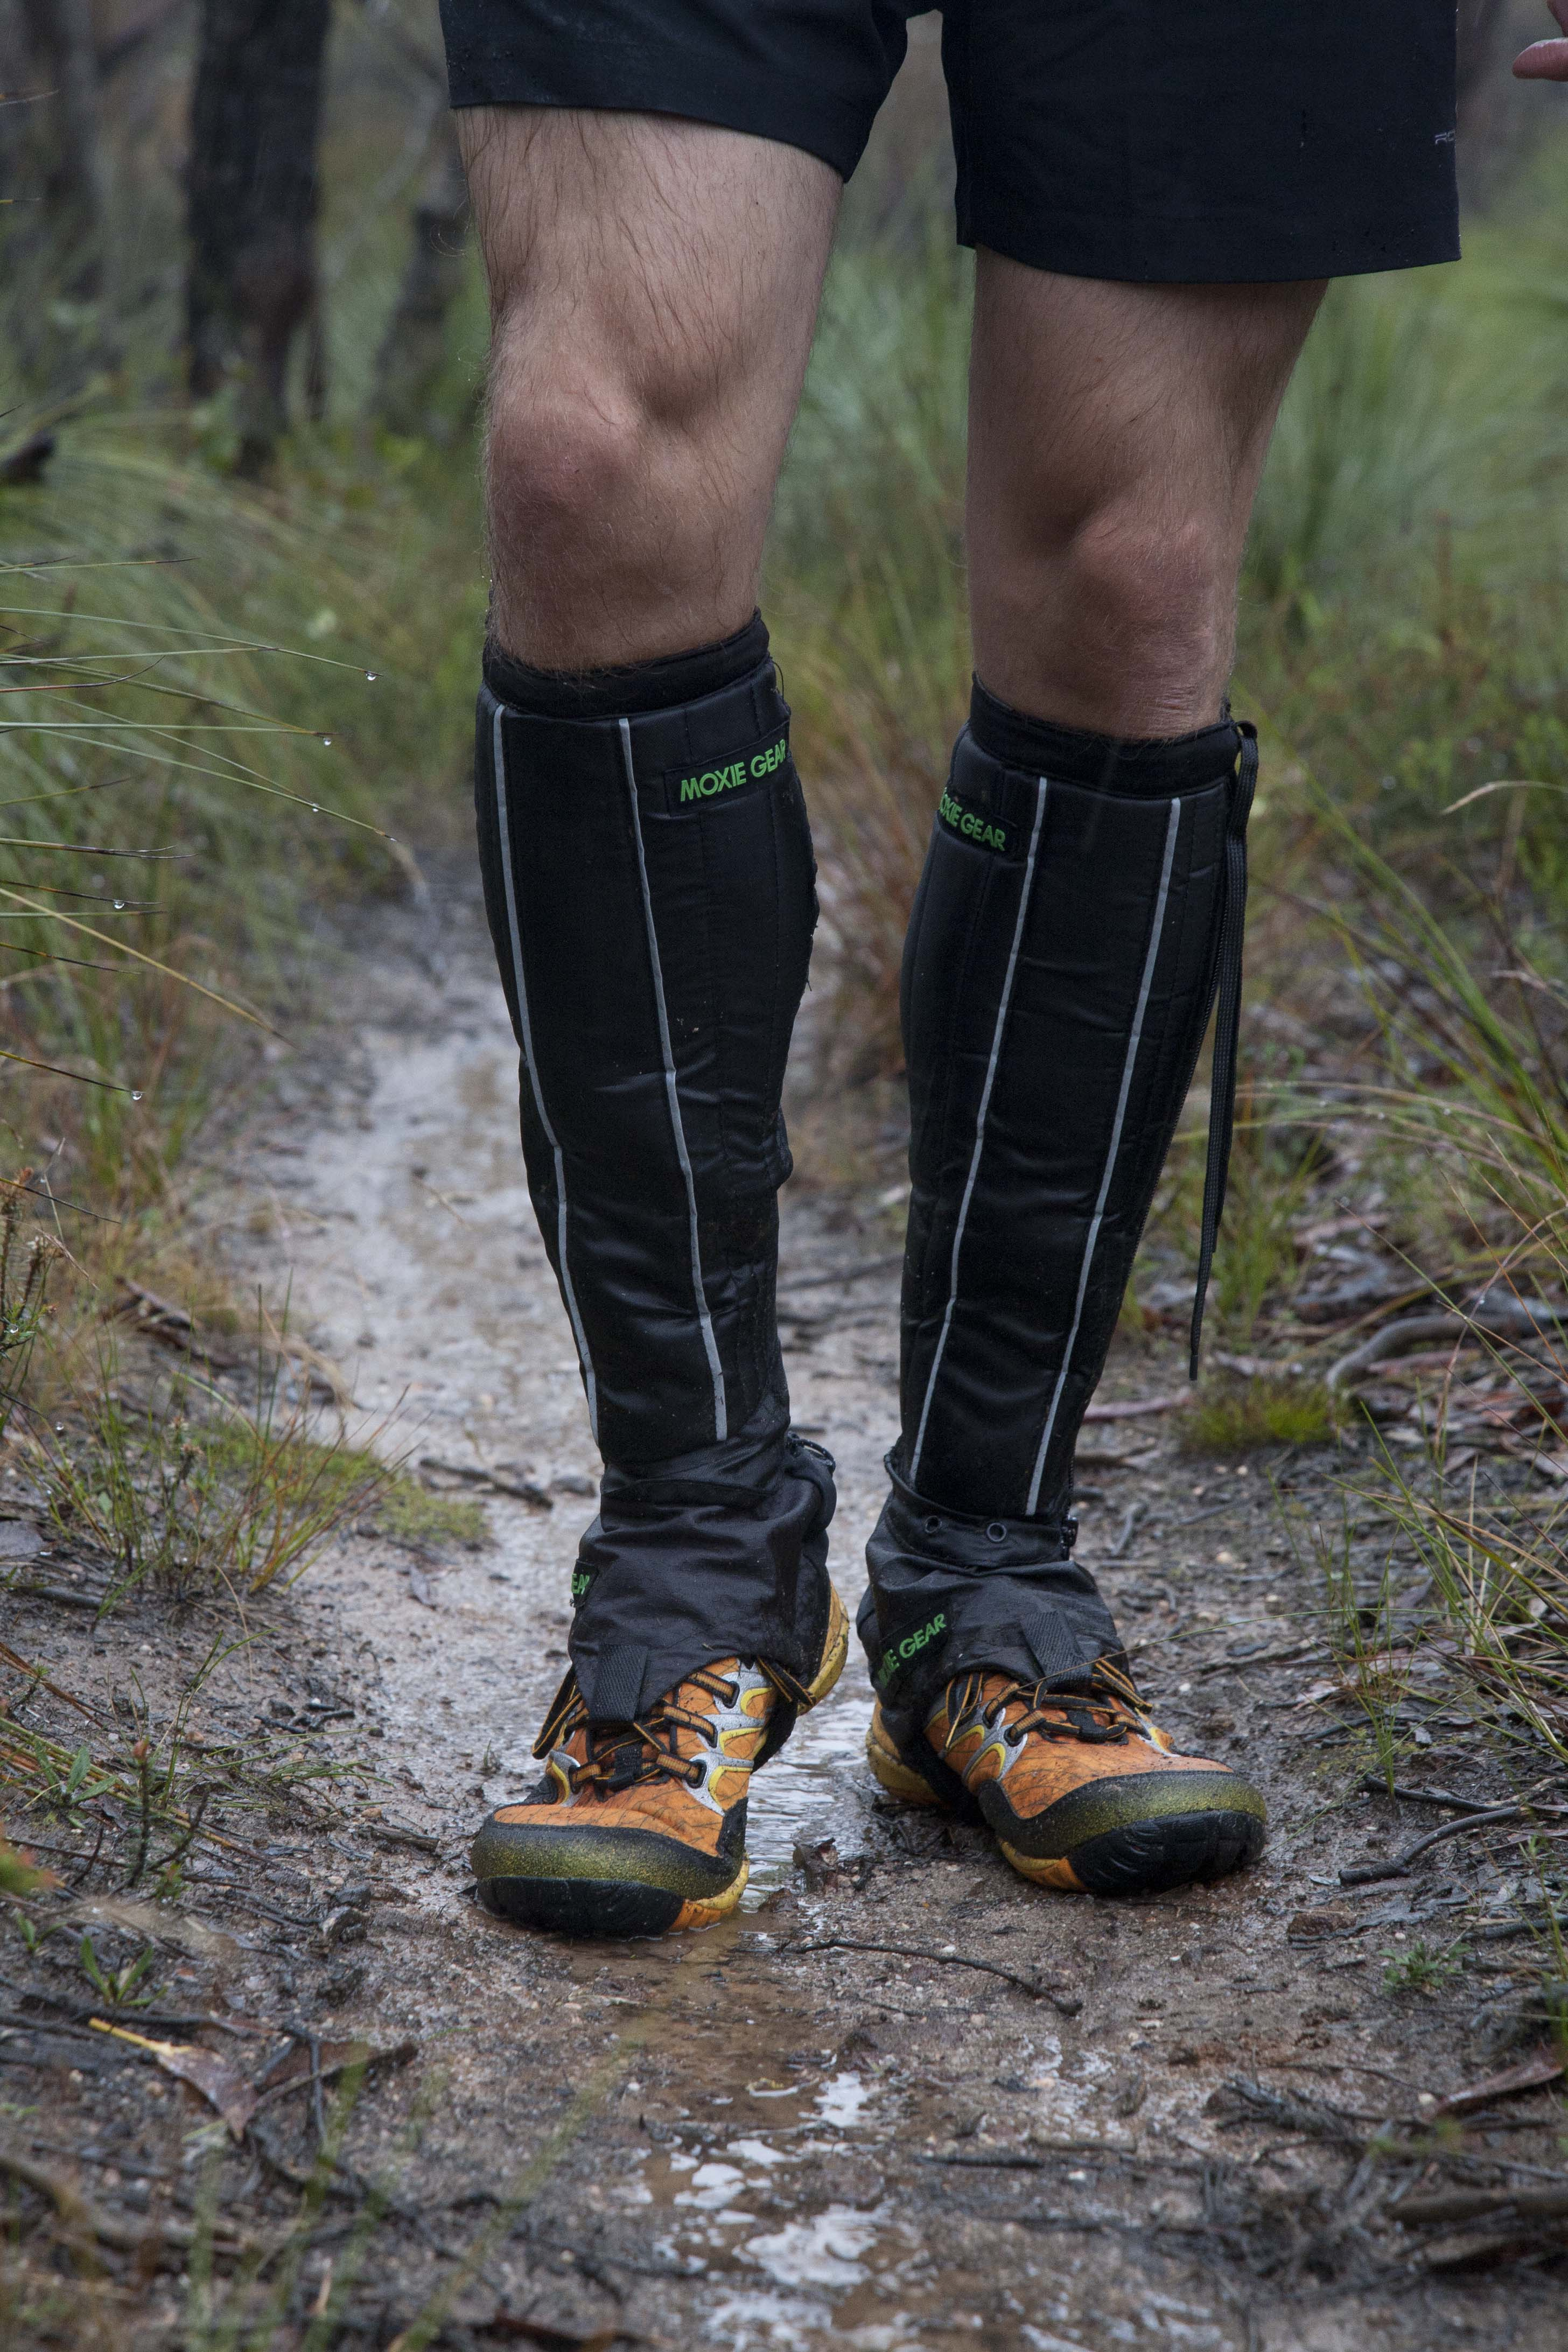 Moxie Gear Gaiters Trailrun Magazine